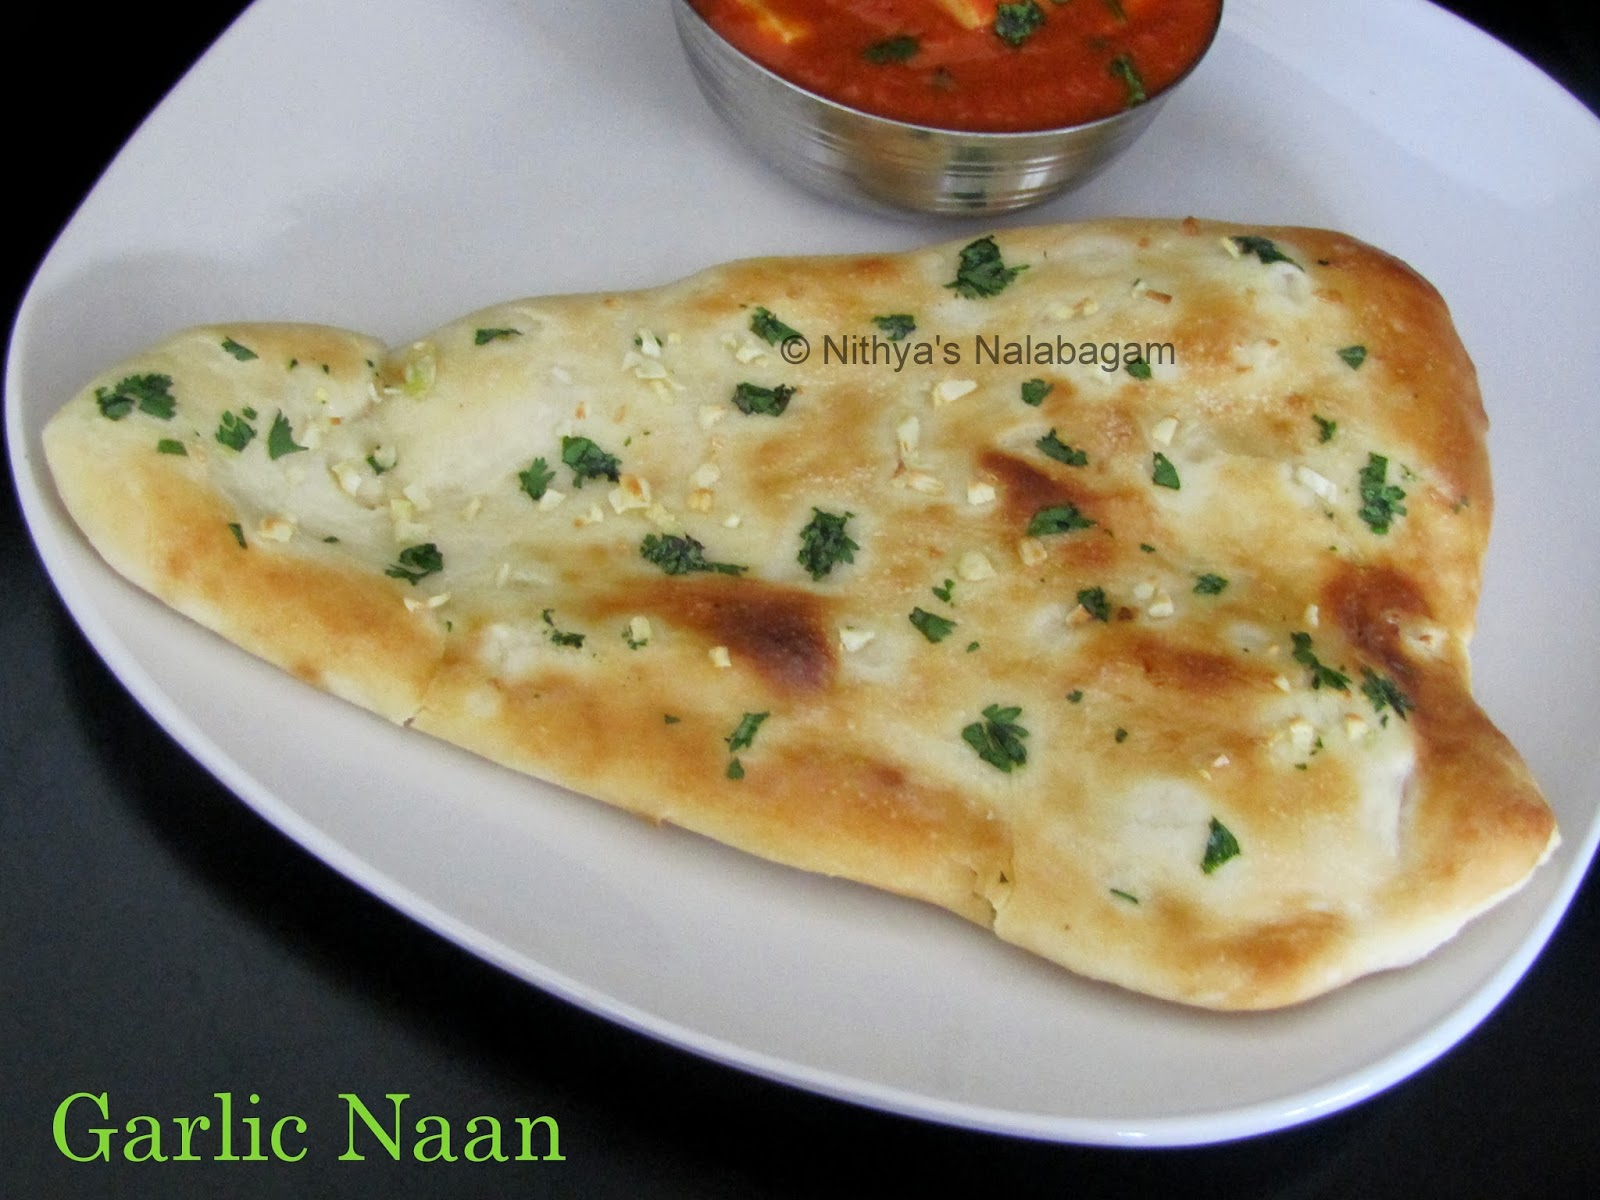 Garlic Naan | Oven Method |Nithya's Nalabagam